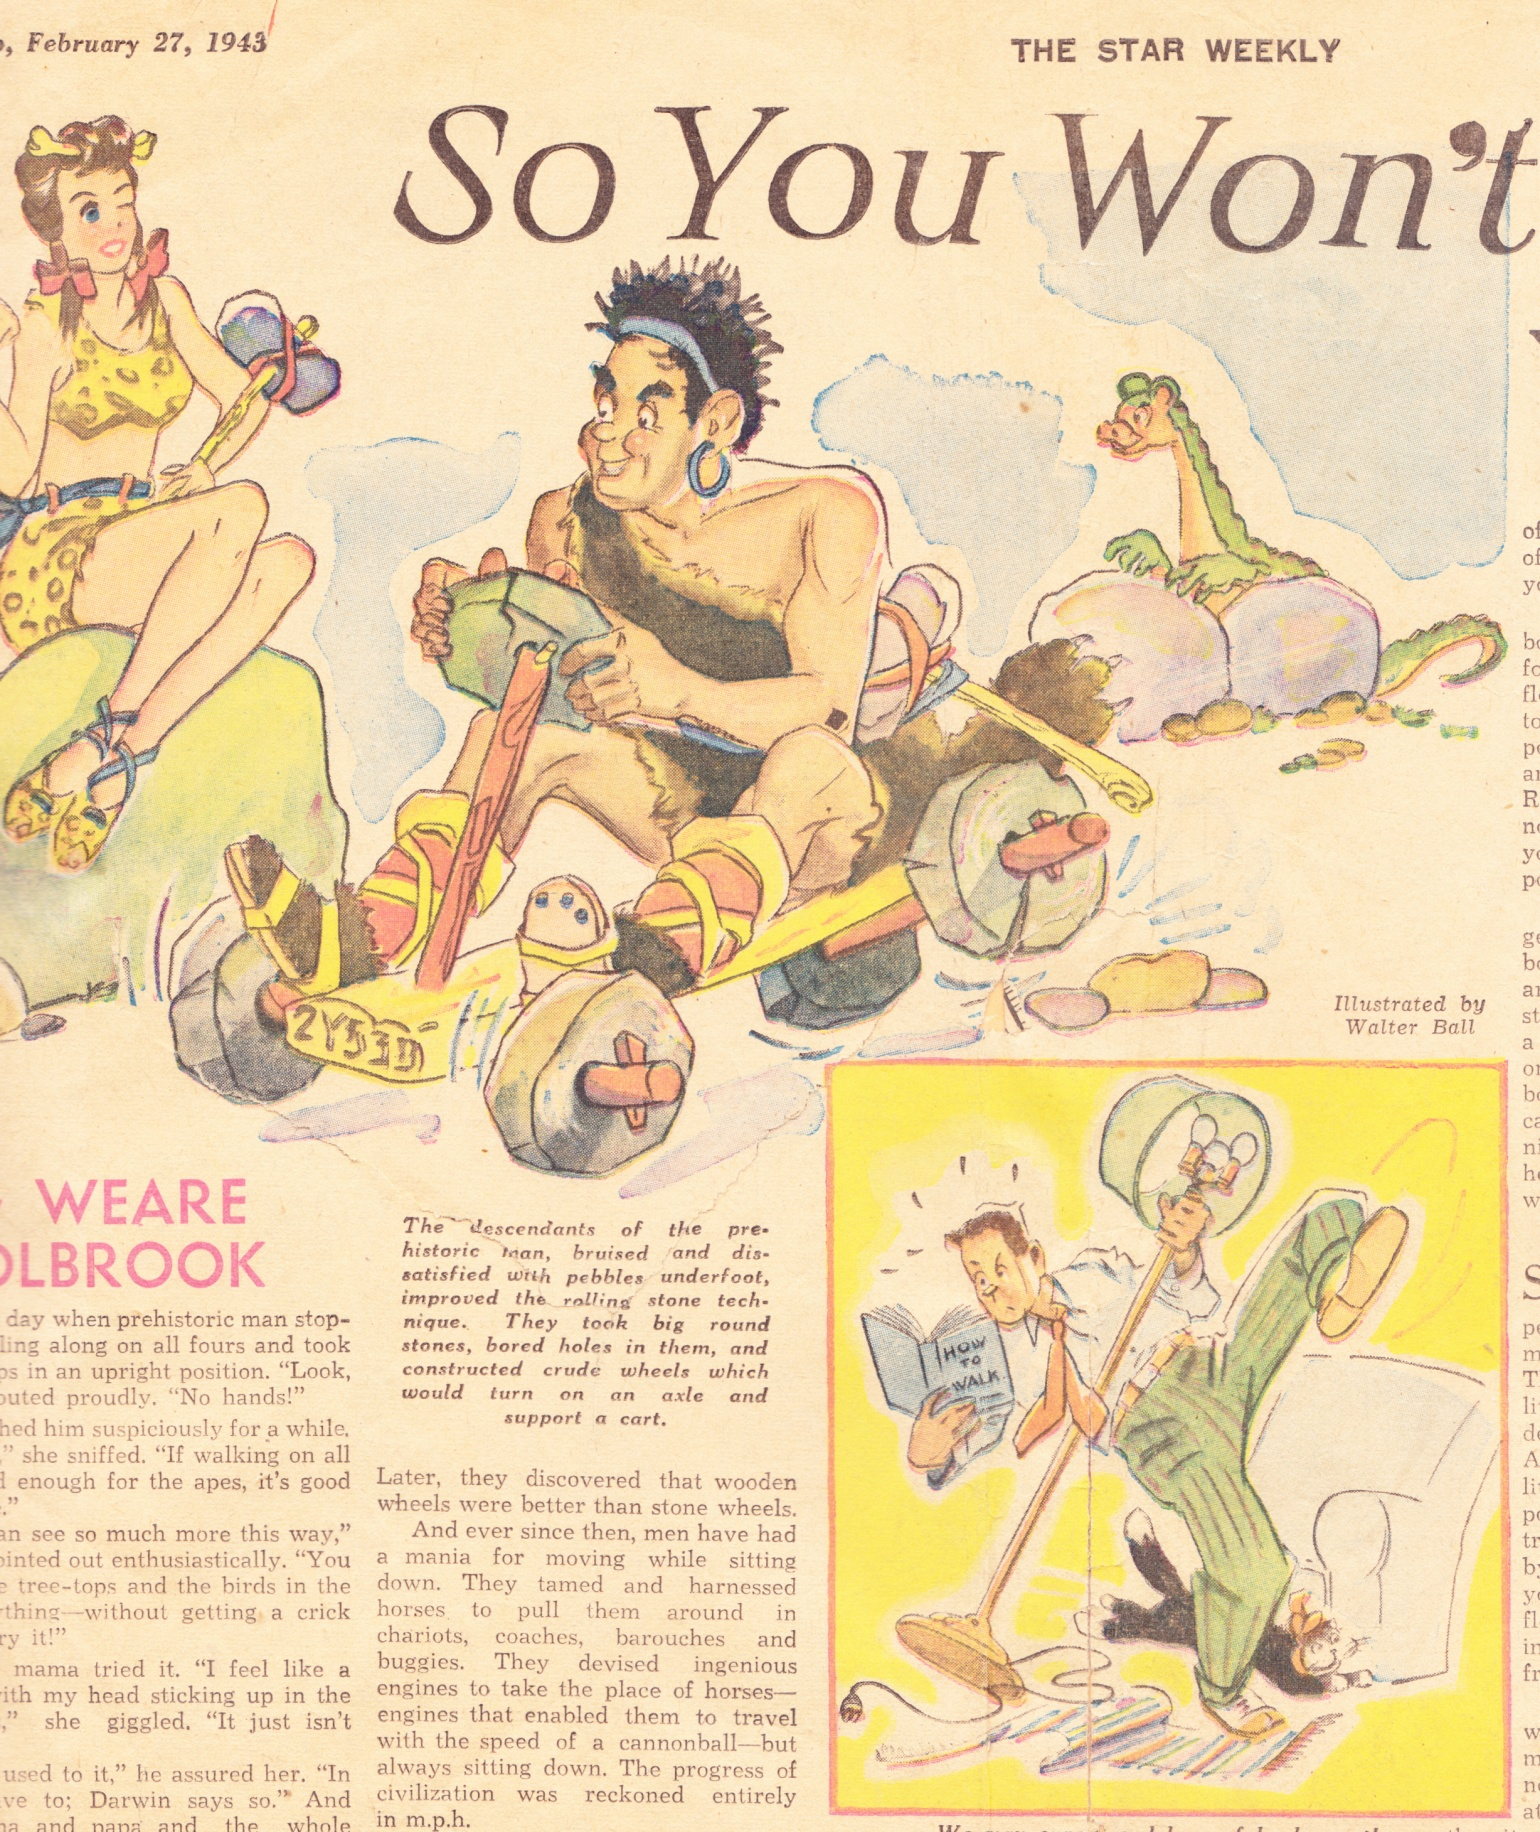 C:\Users\Robert\Documents\CARTOONING ILLUSTRATION ANIMATION\IMAGE BY CARTOONIST\B\BALL Walter, The Star Weekly 27 Feb. 1943 b.jpg